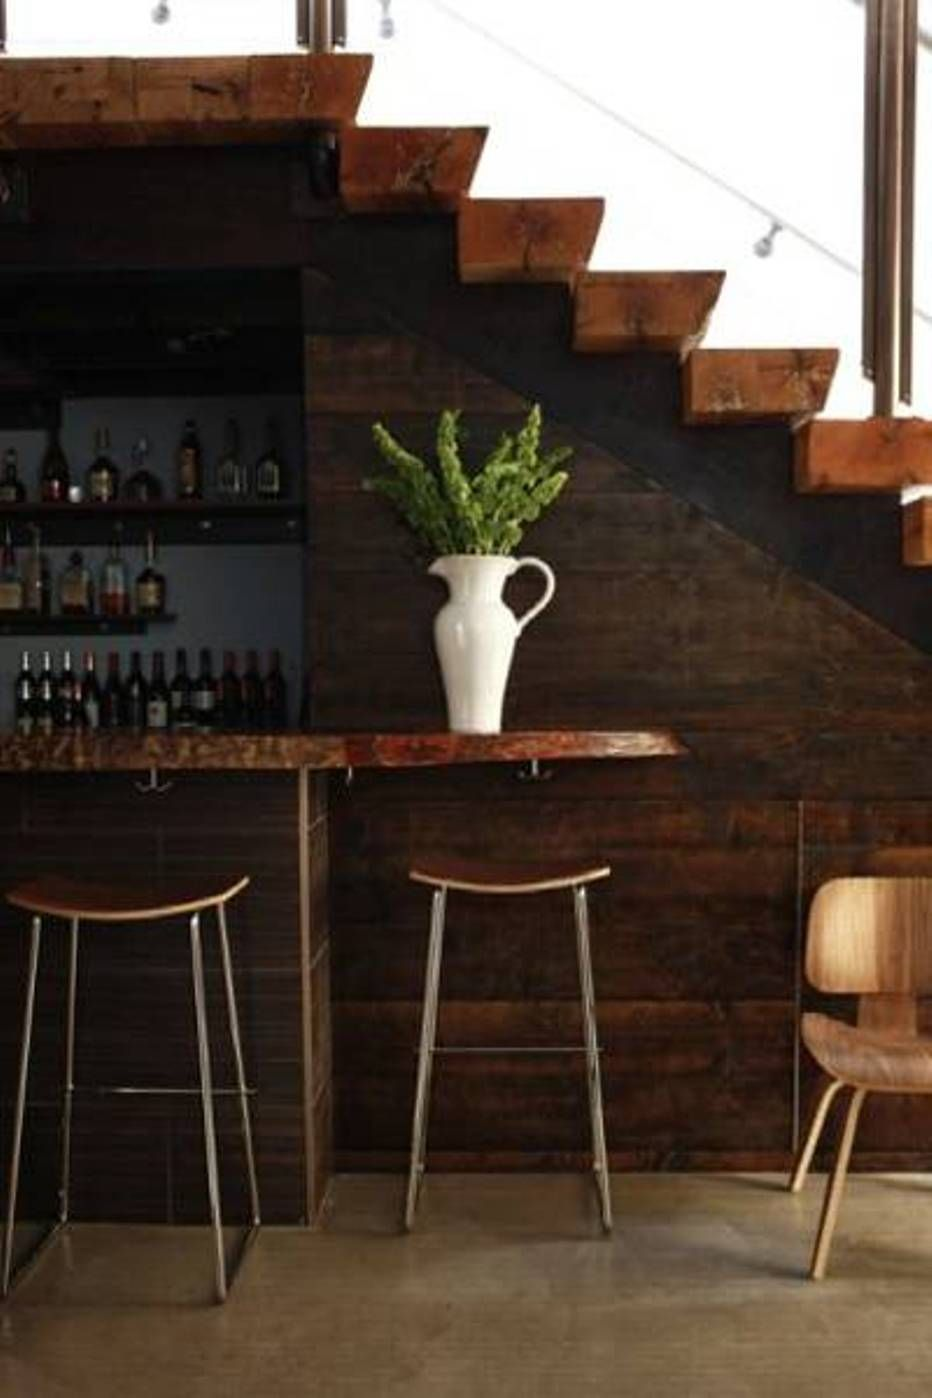 Home Design And Decor Under Stair Design With Mini Bar Rustic Stair Design With Mini Bar Bar Under Stairs Home Bar Designs Rustic Stairs